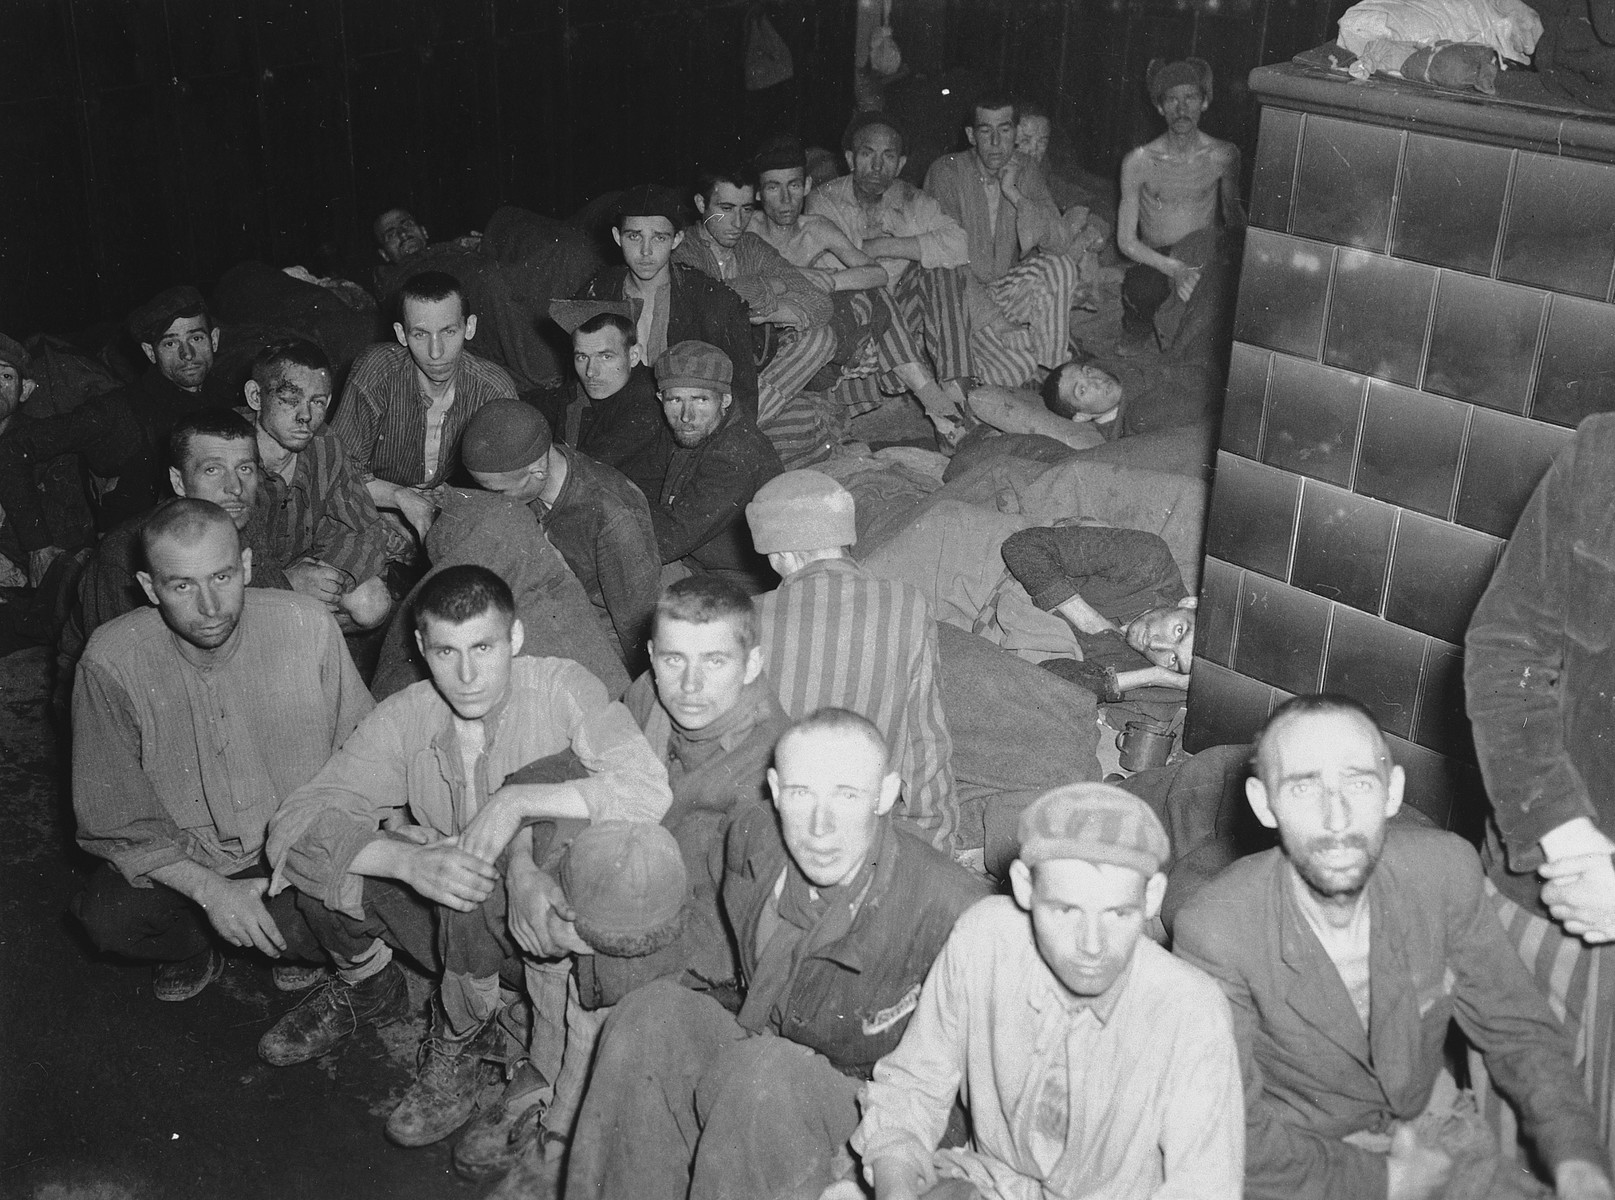 Survivors sit on the floor of a crowded barrack in the Dachau concentration camp.